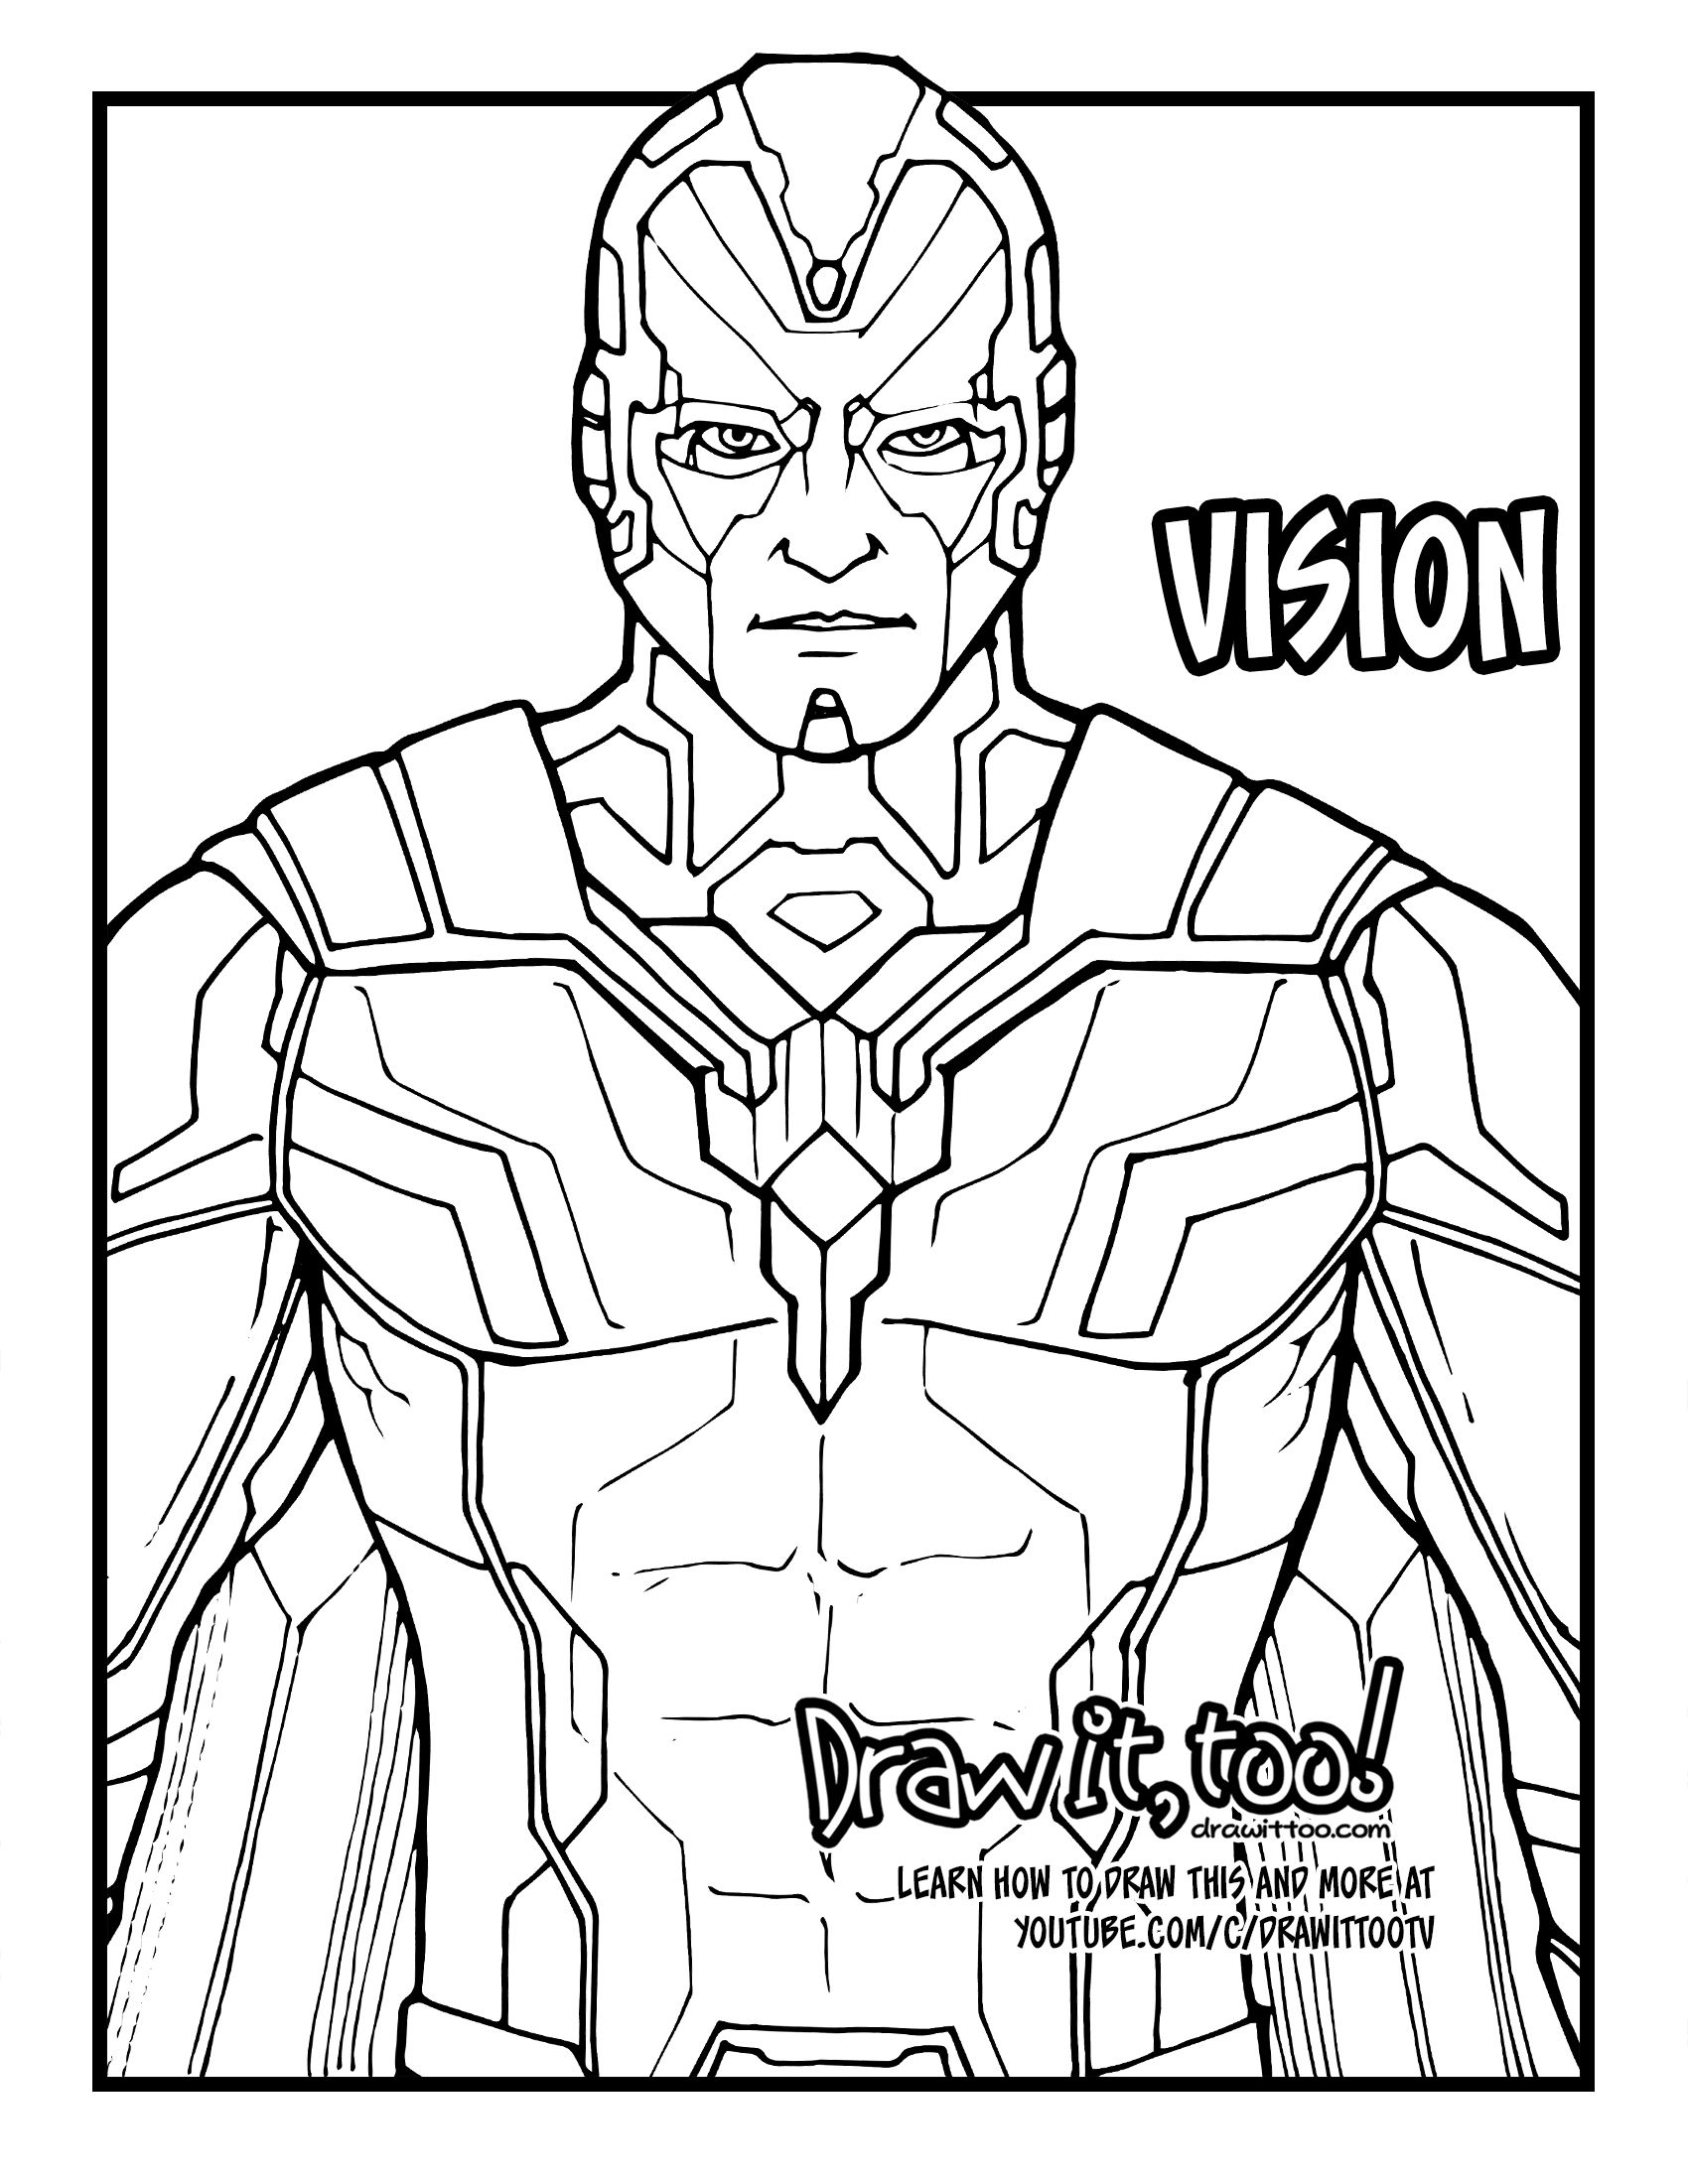 How To Draw Vision Avengers Infinity War Drawing Tutorial Draw It Too In 2021 Avengers Coloring Pages Marvel Coloring Vision Avengers